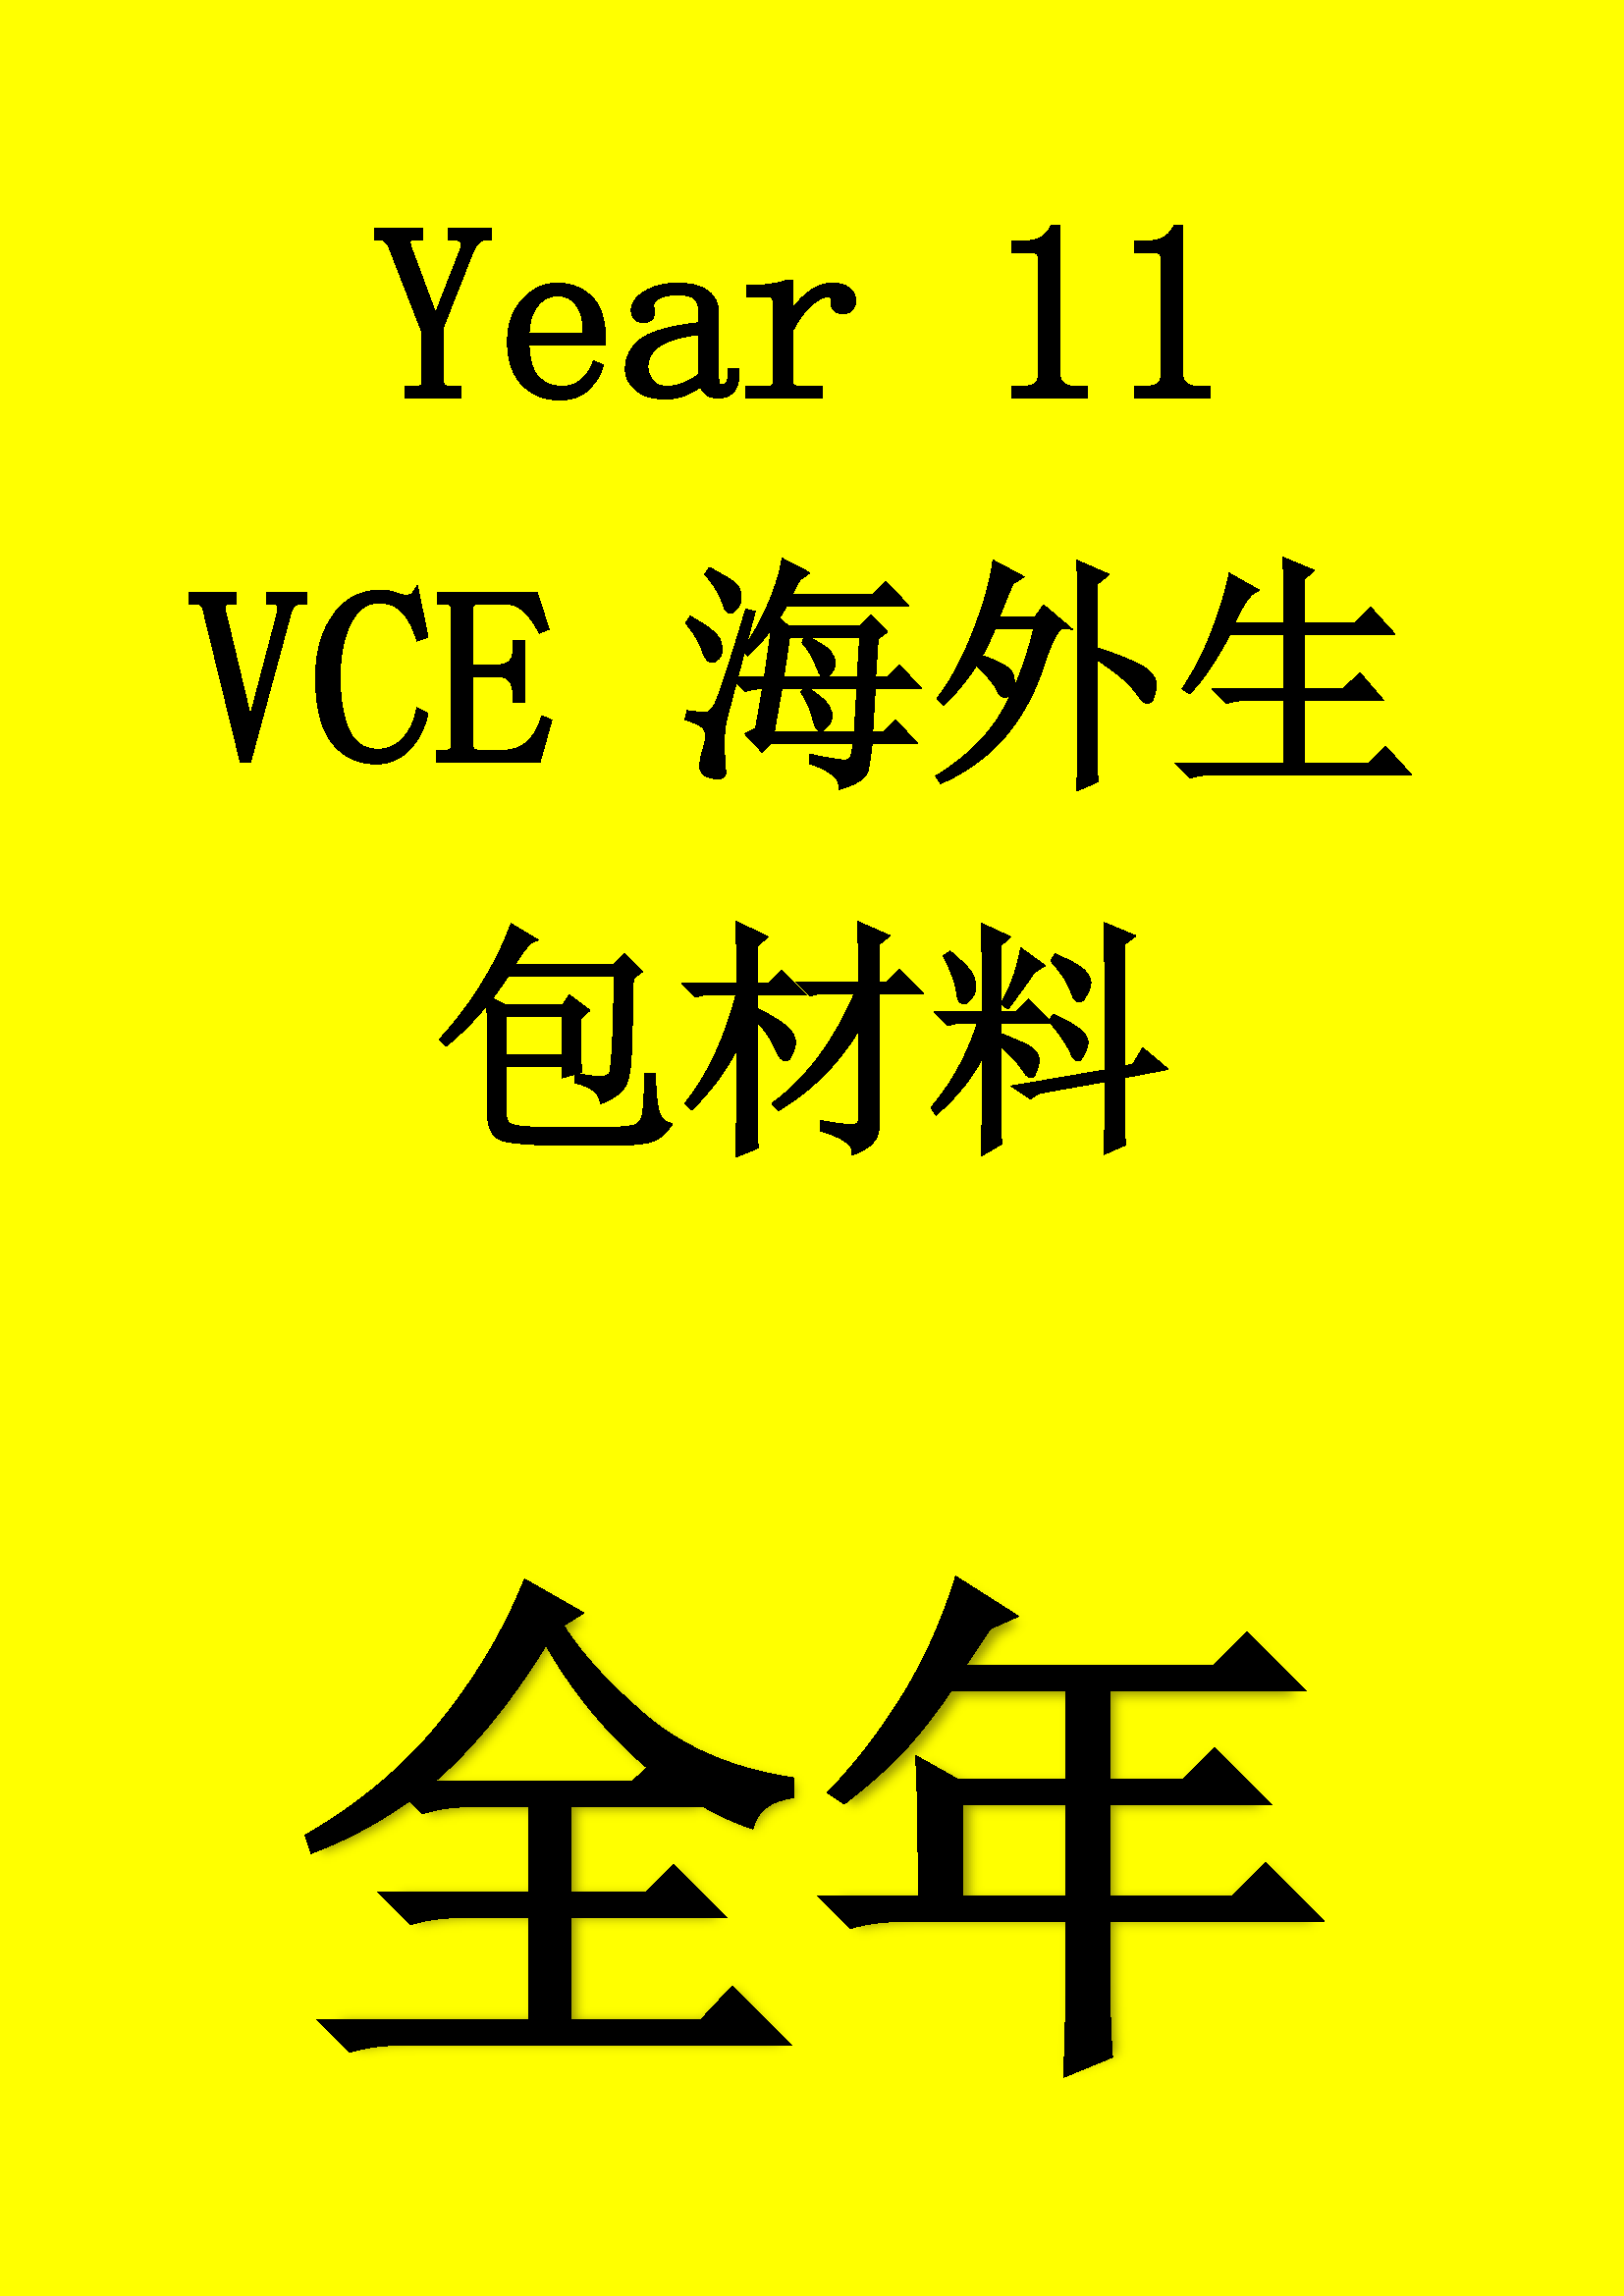 VCE Chinese Year 11 Oversea Student Full year